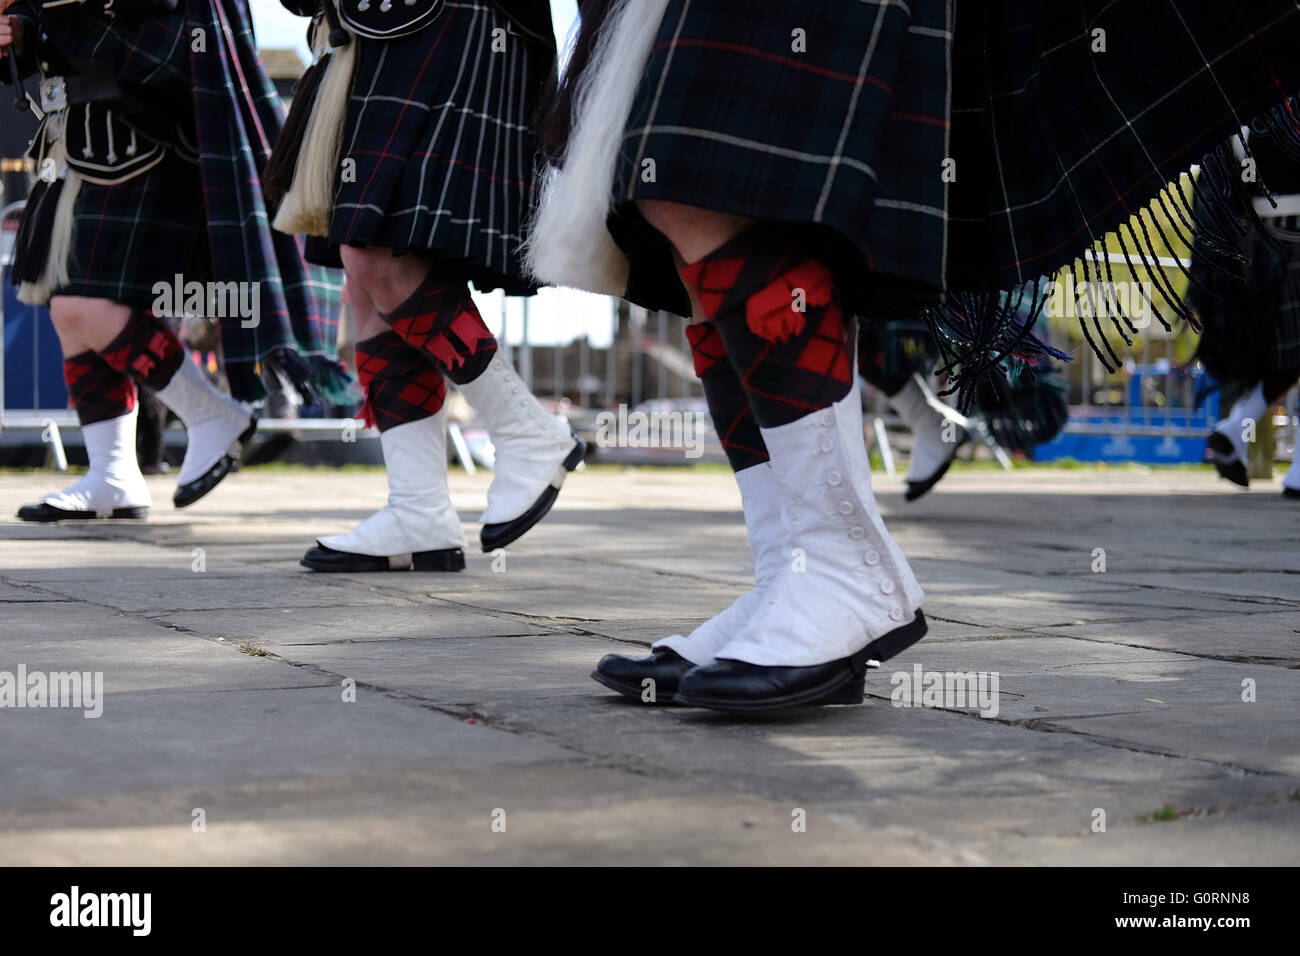 Low angle feet and leg shot of of three Scottish pipers with white spats, tartan socks and kilts. - Stock Image